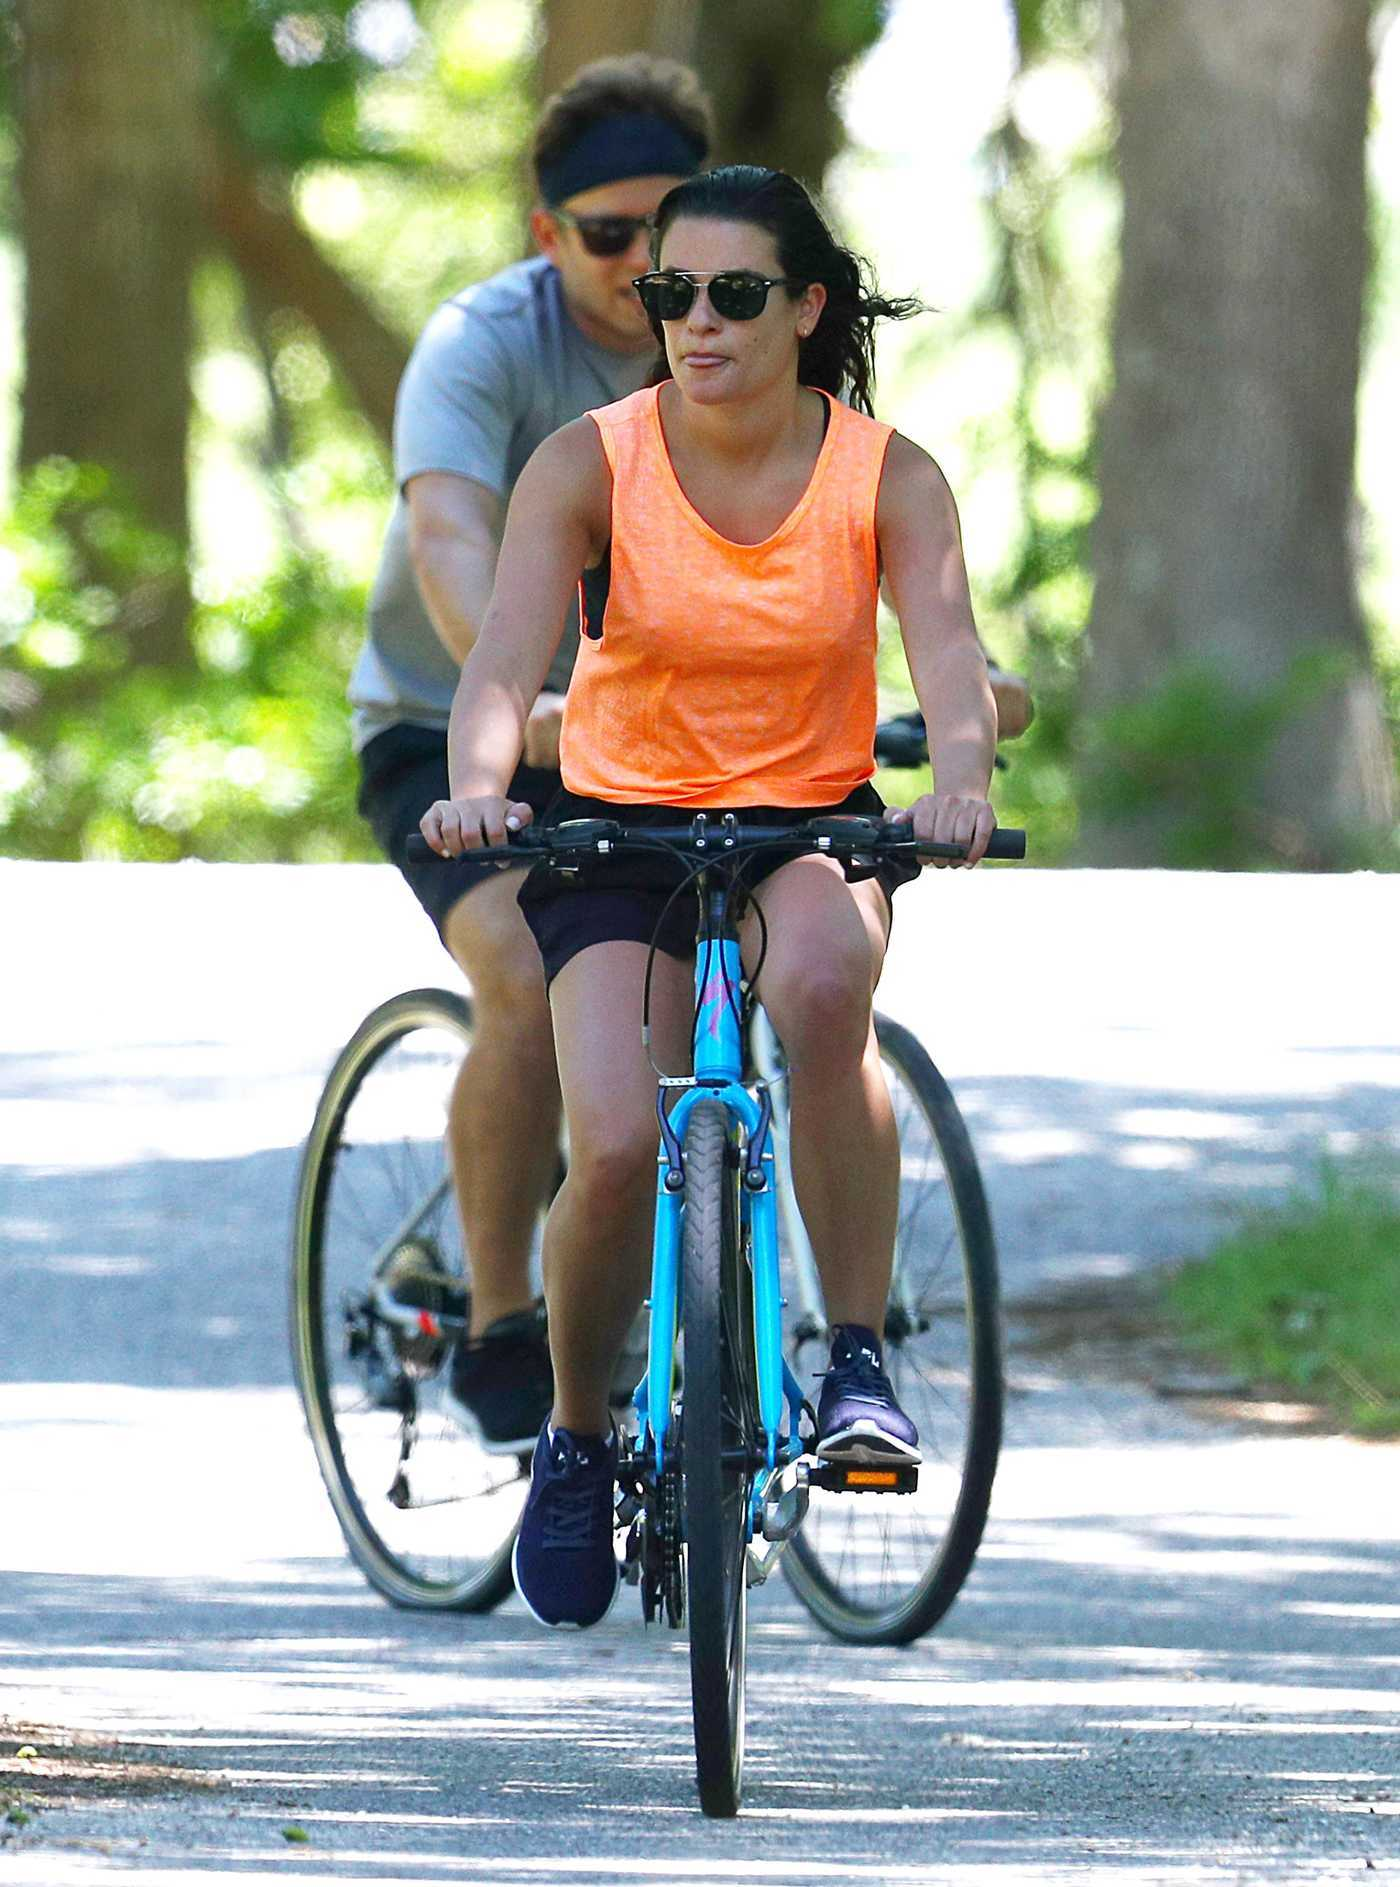 Lea Michele Does a Beach Bike Ride Out with Zandy Reich in the Hamptons, New York 07/09/2018